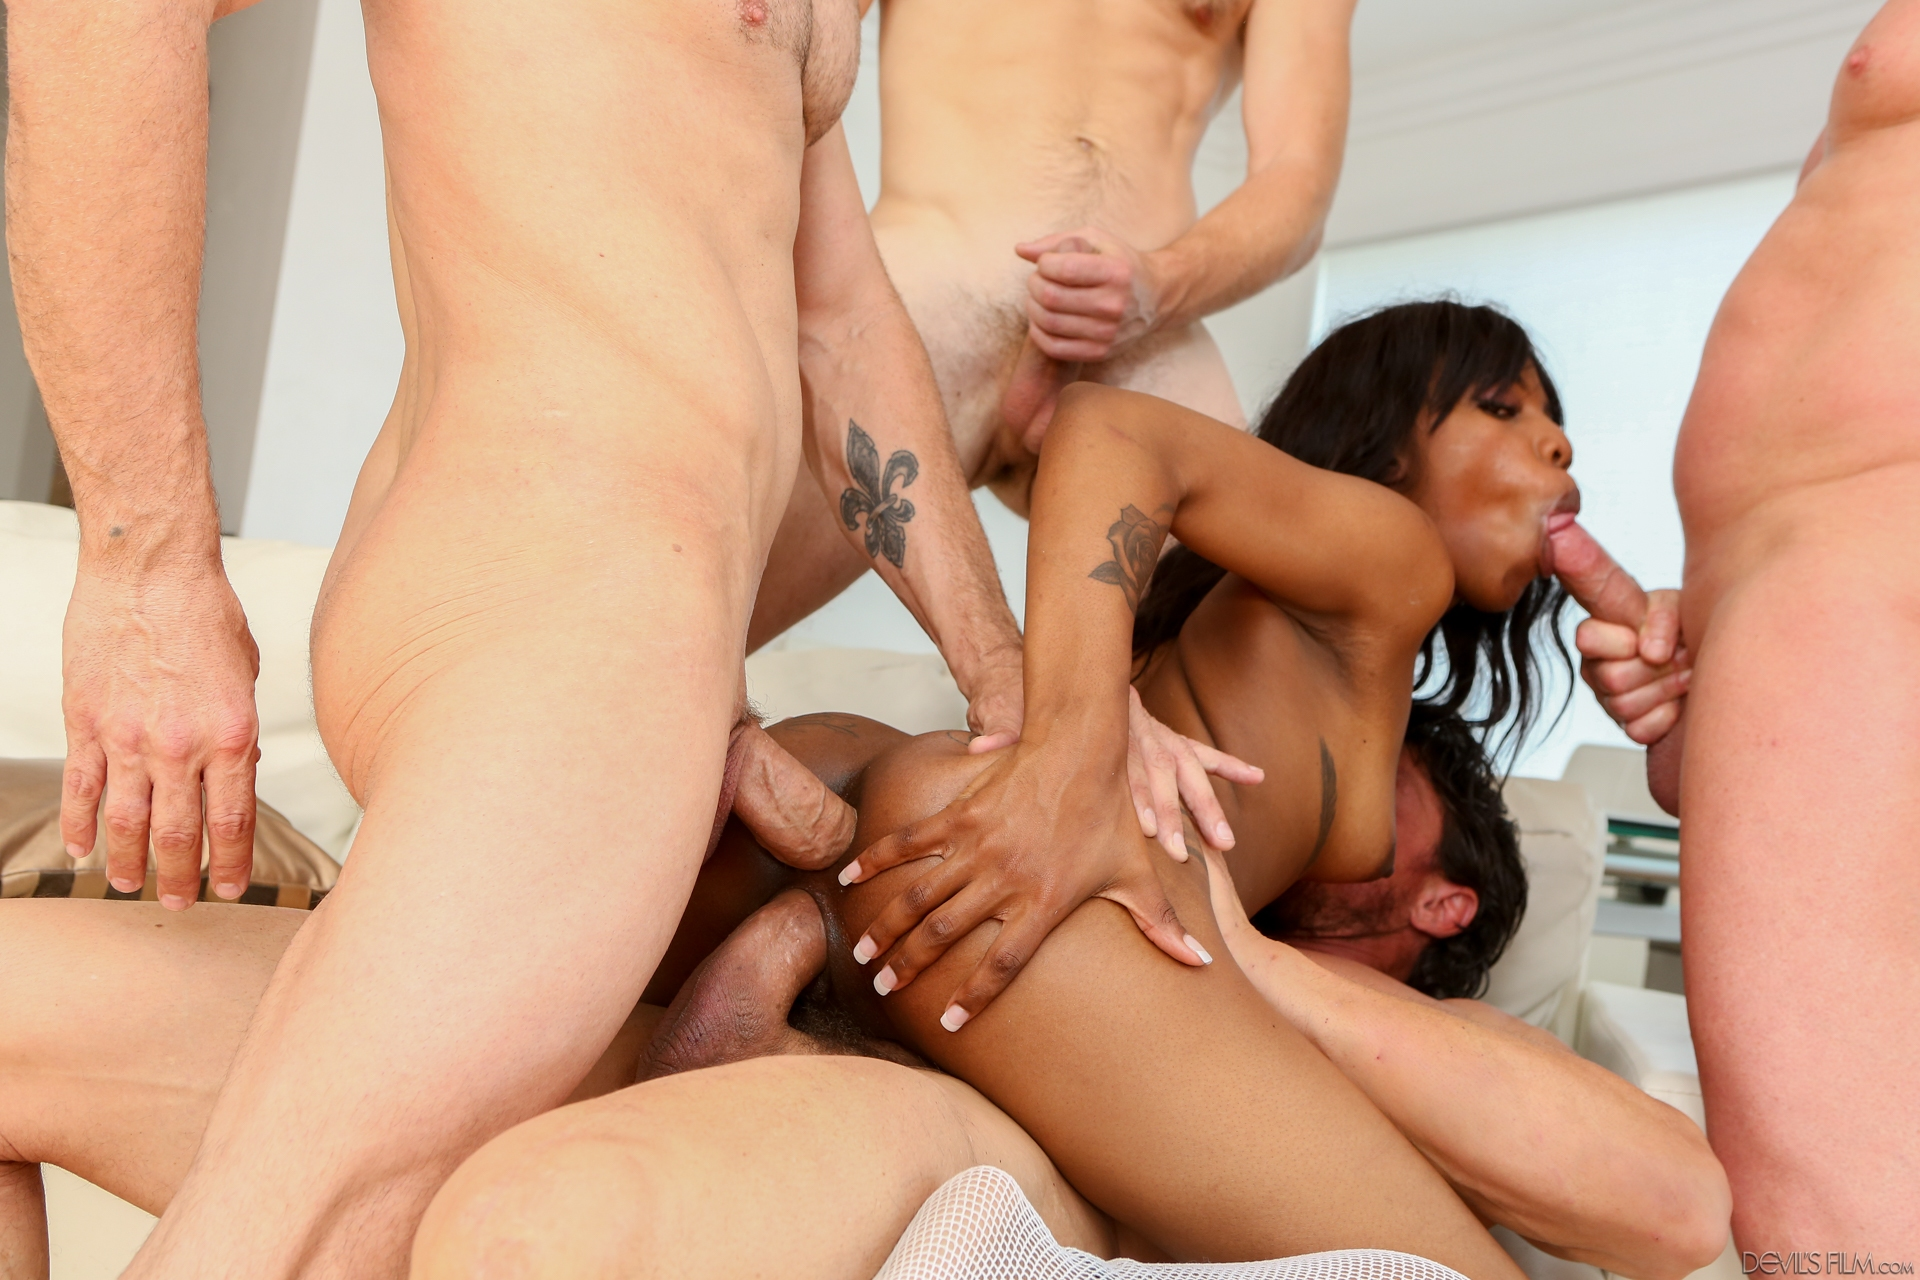 naked-black-women-with-white-guys-download-kevin-williams-porn-video